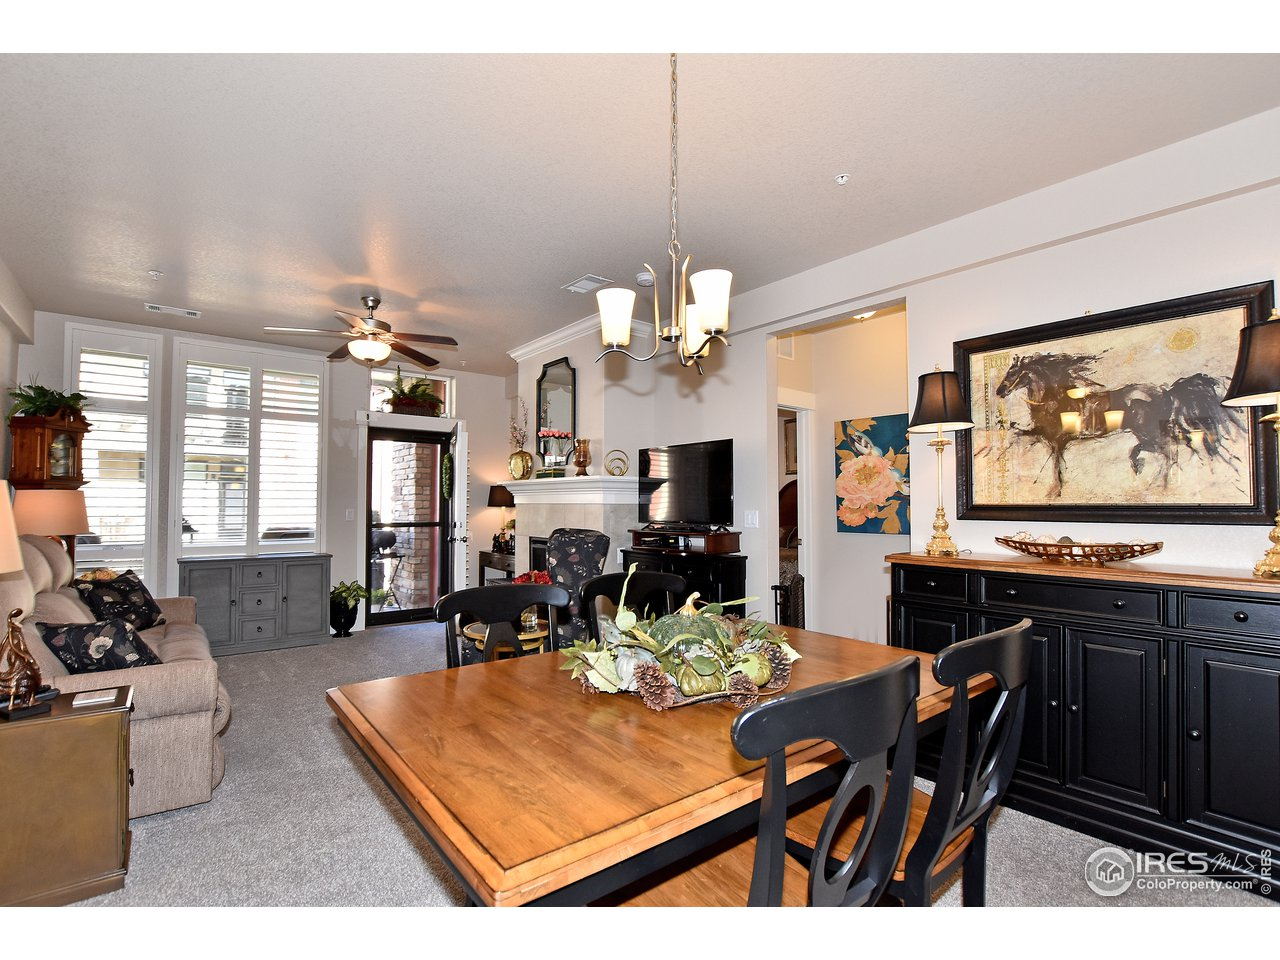 Dining room leads right into great room to entertain for hours!